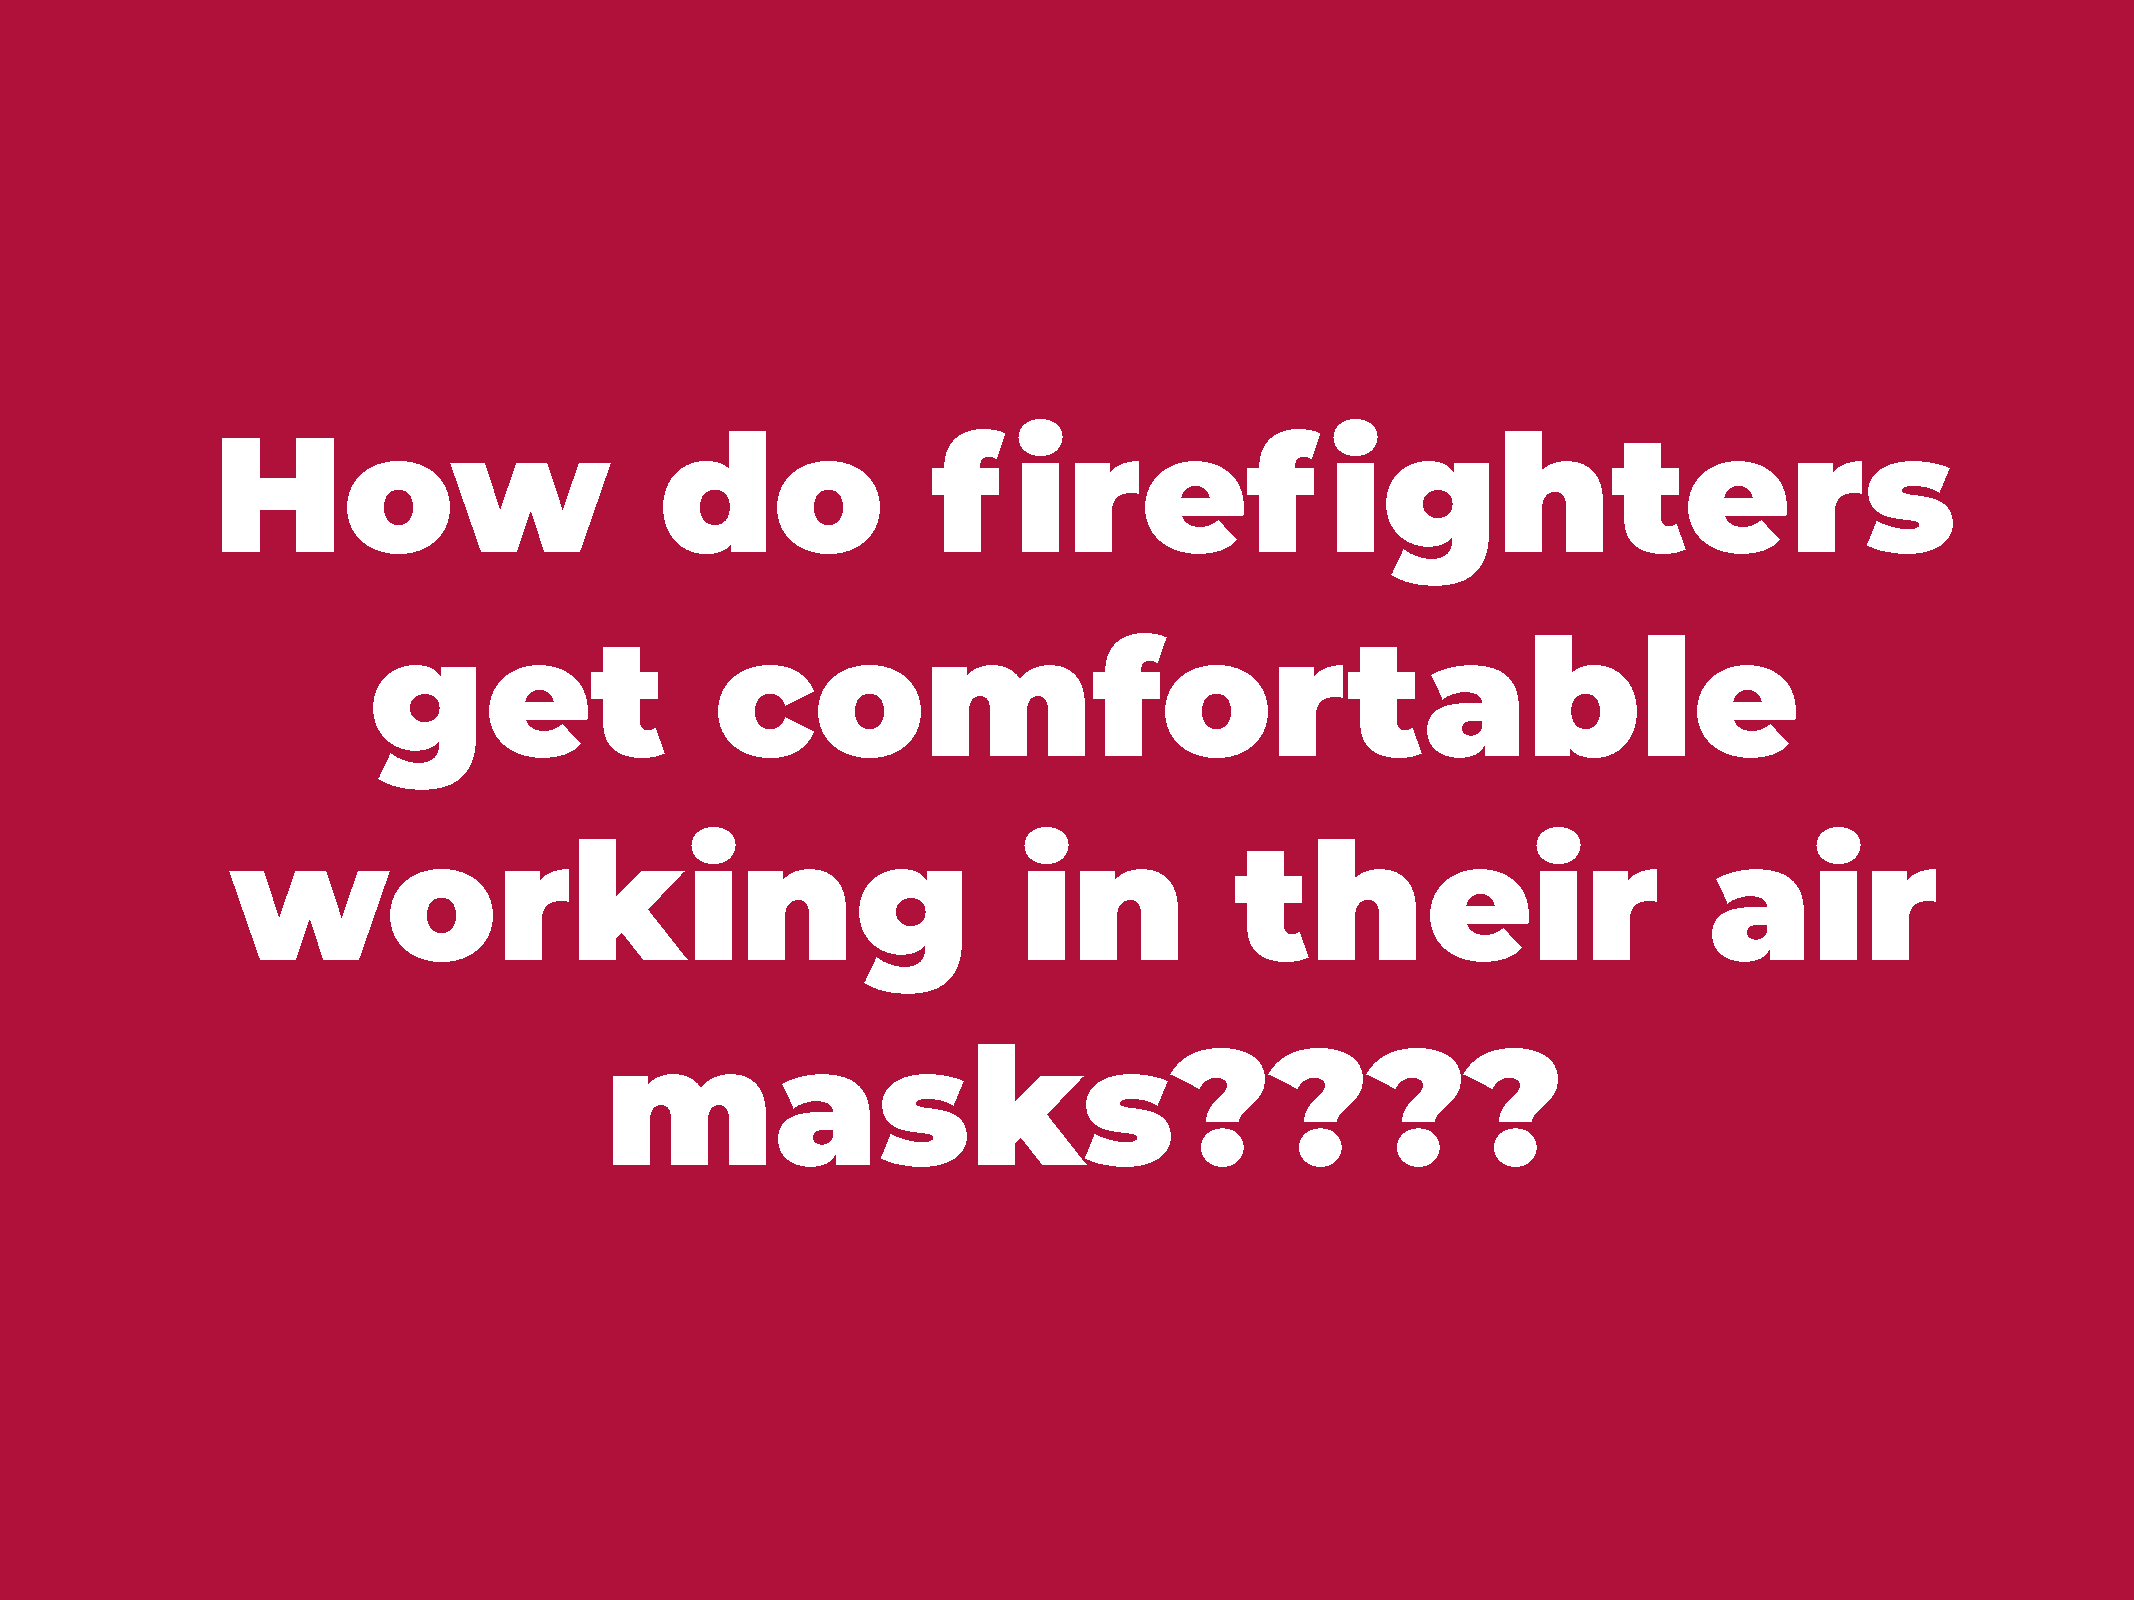 """How do firefighters get comfortable working in their air masks?"